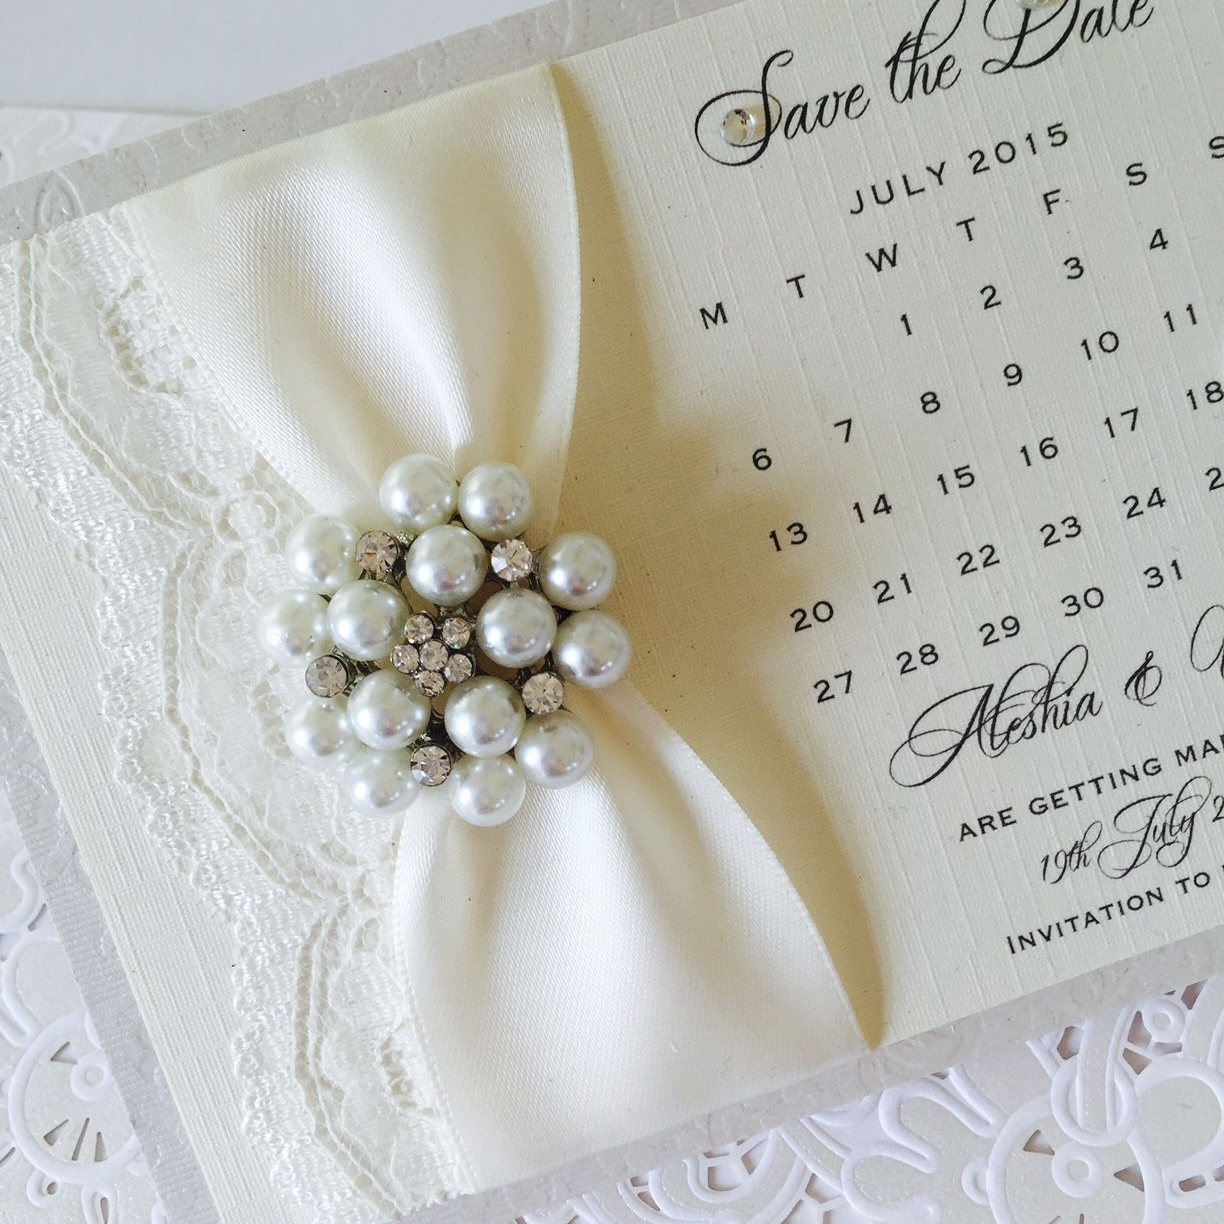 Save the date card designs with brooches